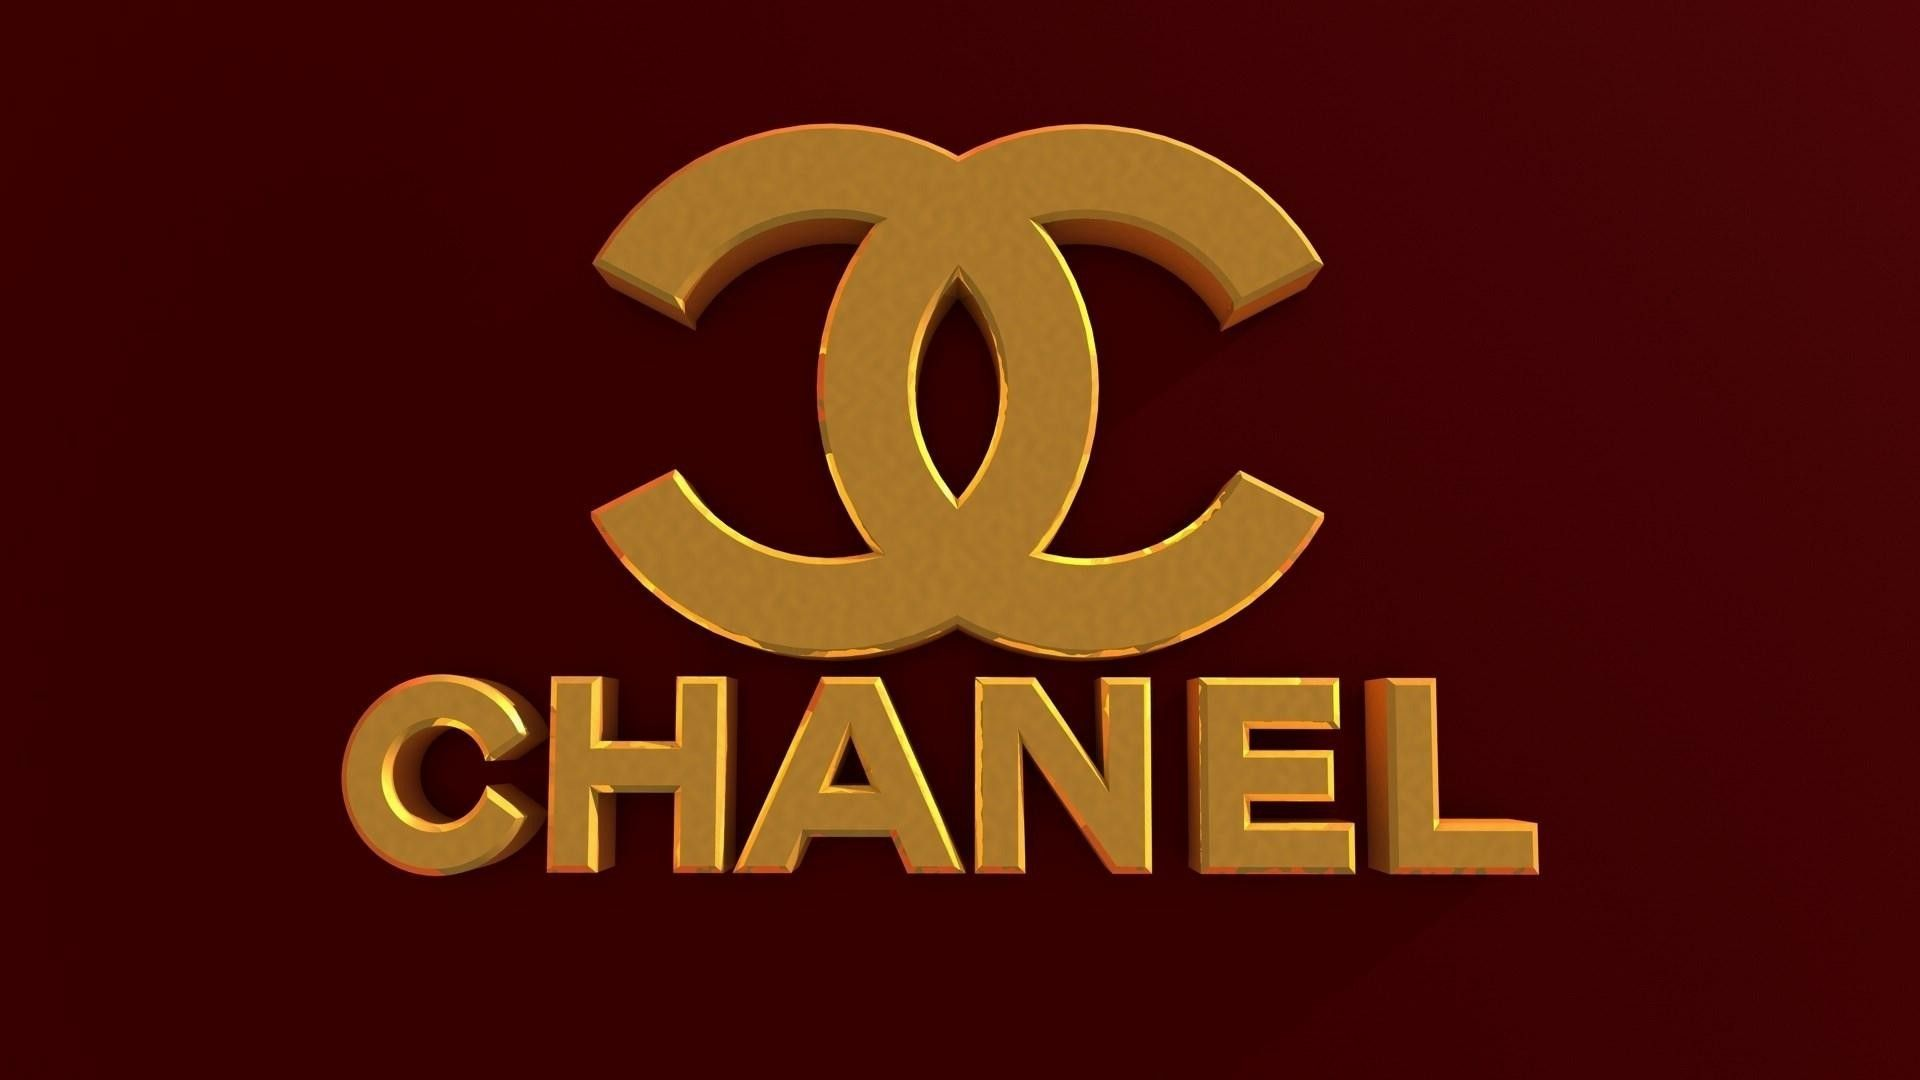 Chanel Aesthetic Wallpapers Wallpaper Cave Chanel logo font was based on coco chanel's handwriting. chanel aesthetic wallpapers wallpaper